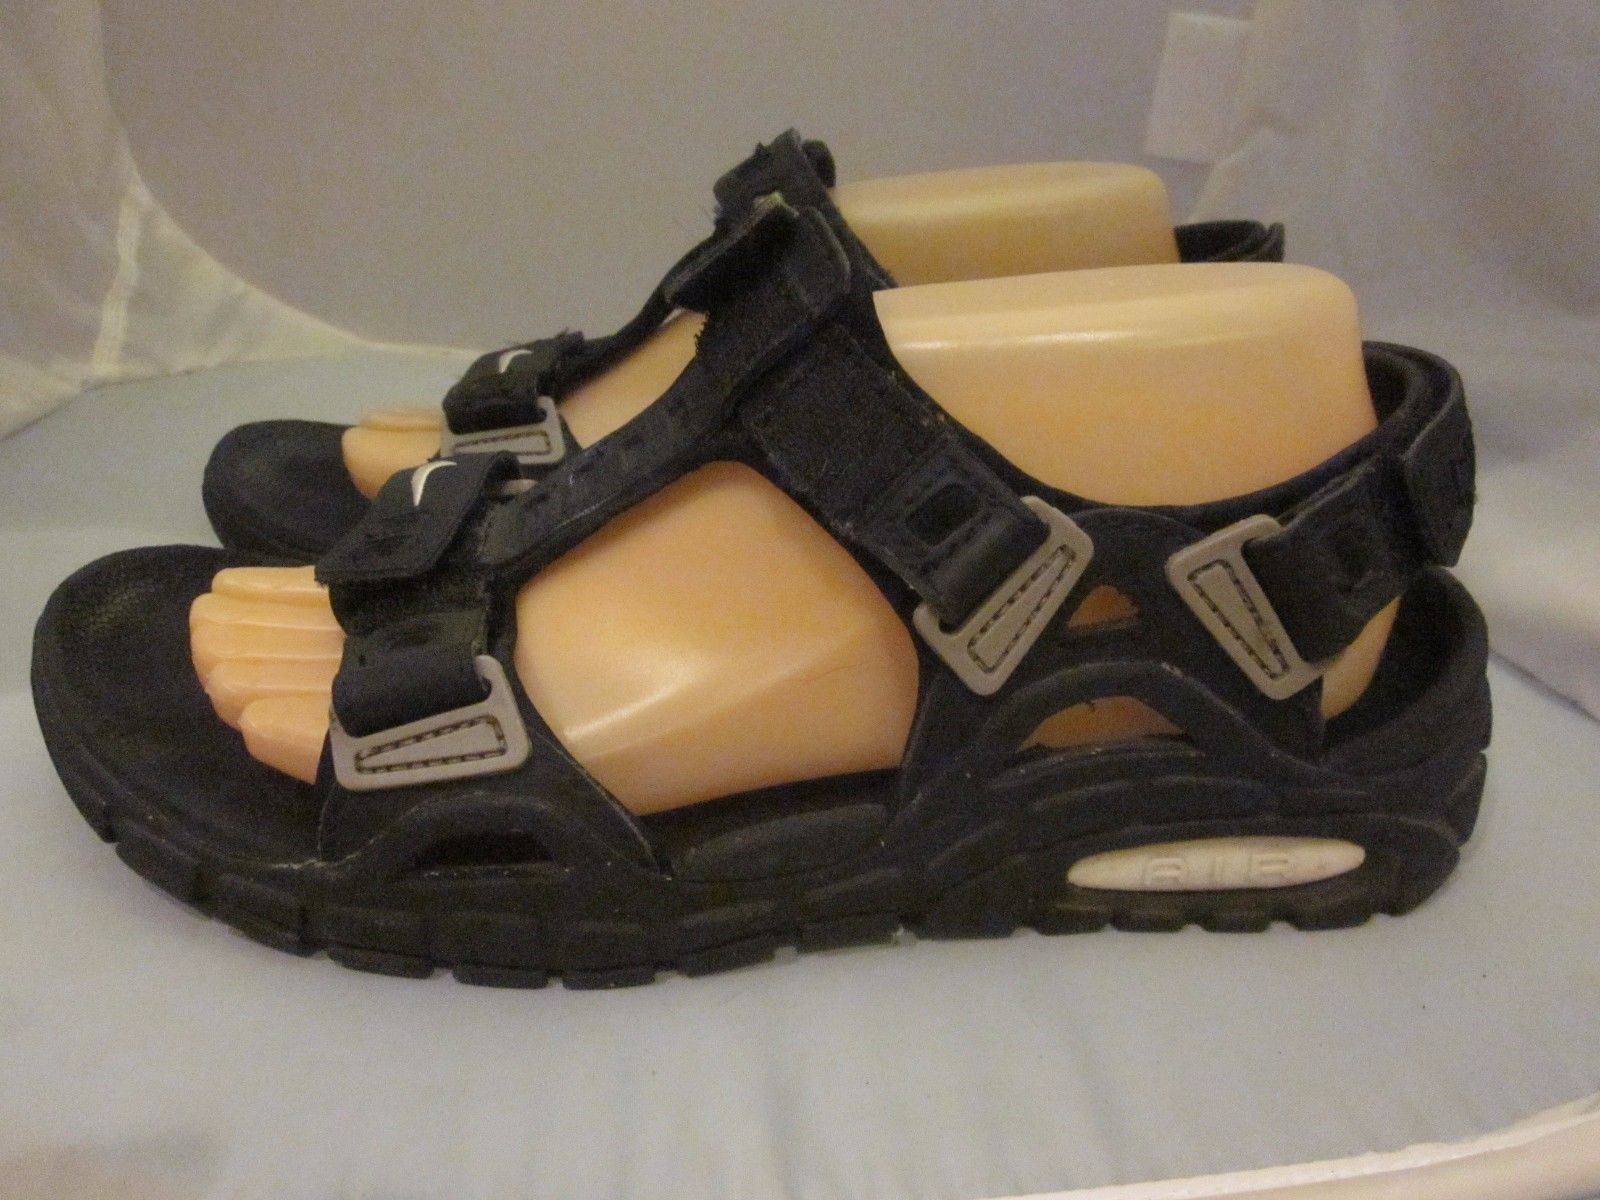 d138db6b09fa ... order image result for nike acg air deschutz sandals shoes walking  hiking trail leather 0d045 4b0a2 ...